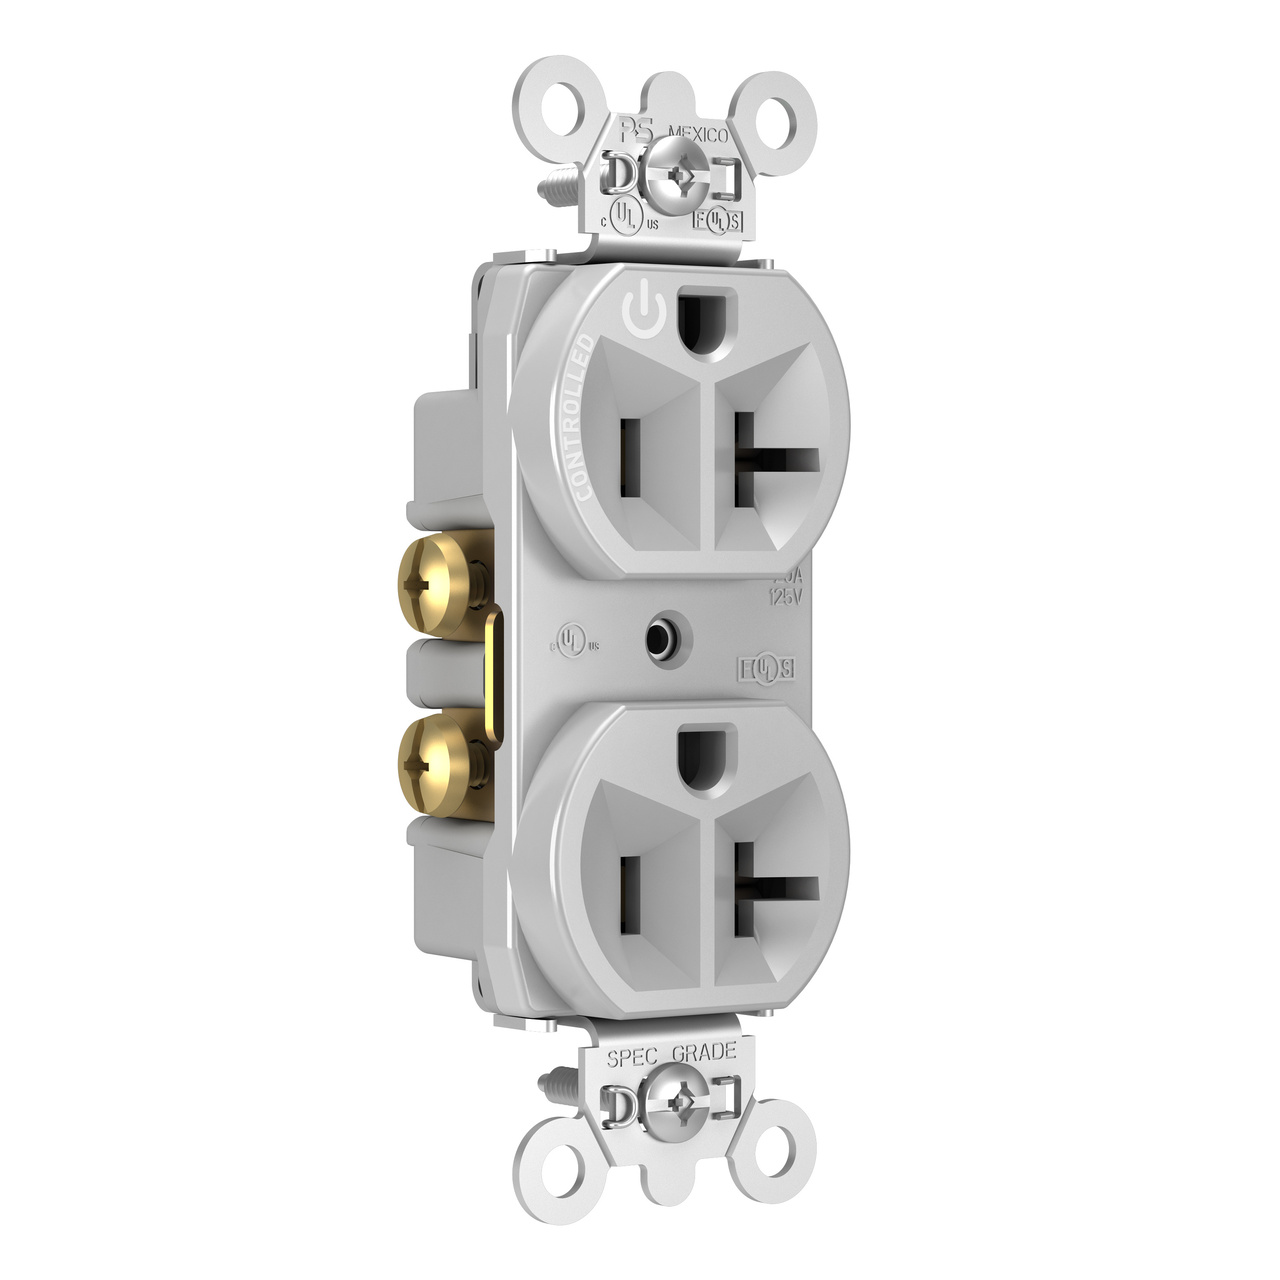 20A, 125V Half-Controlled Plug Load Controllable Receptacle, Gray